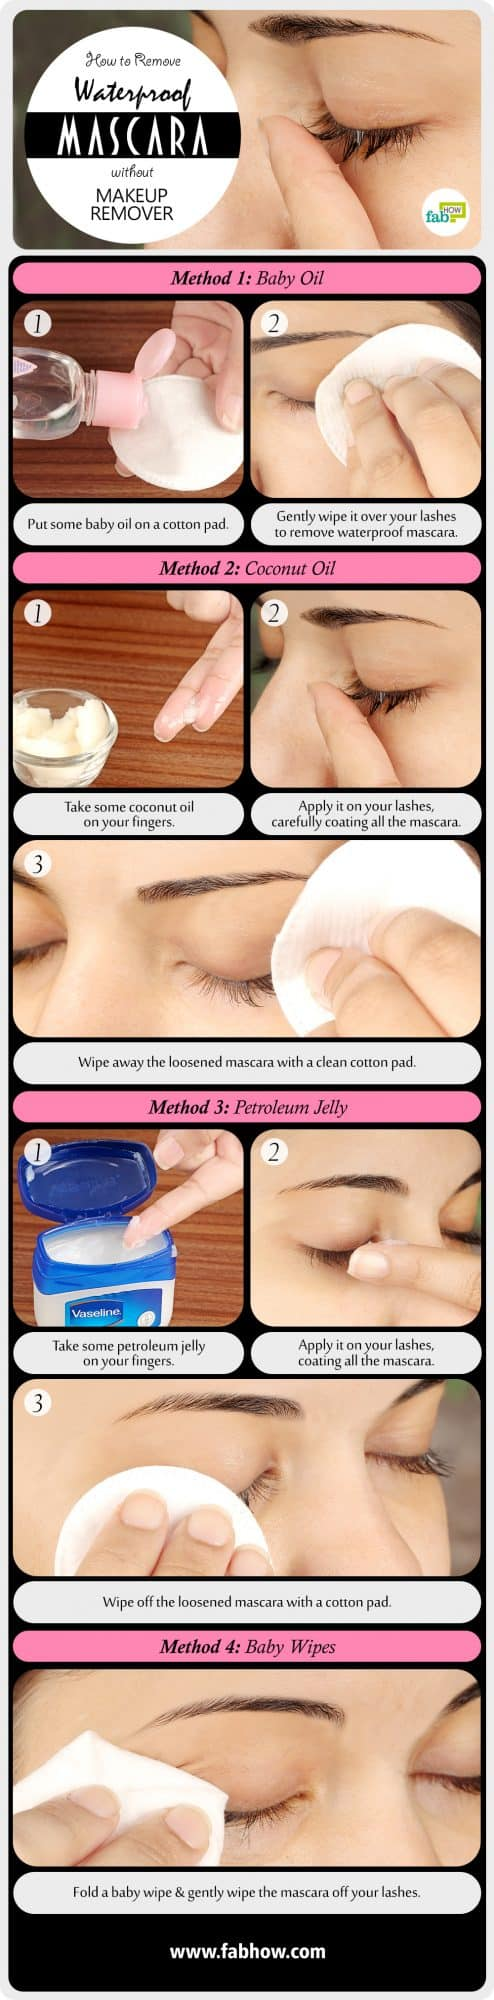 How to Remove Waterproof Mascara summary